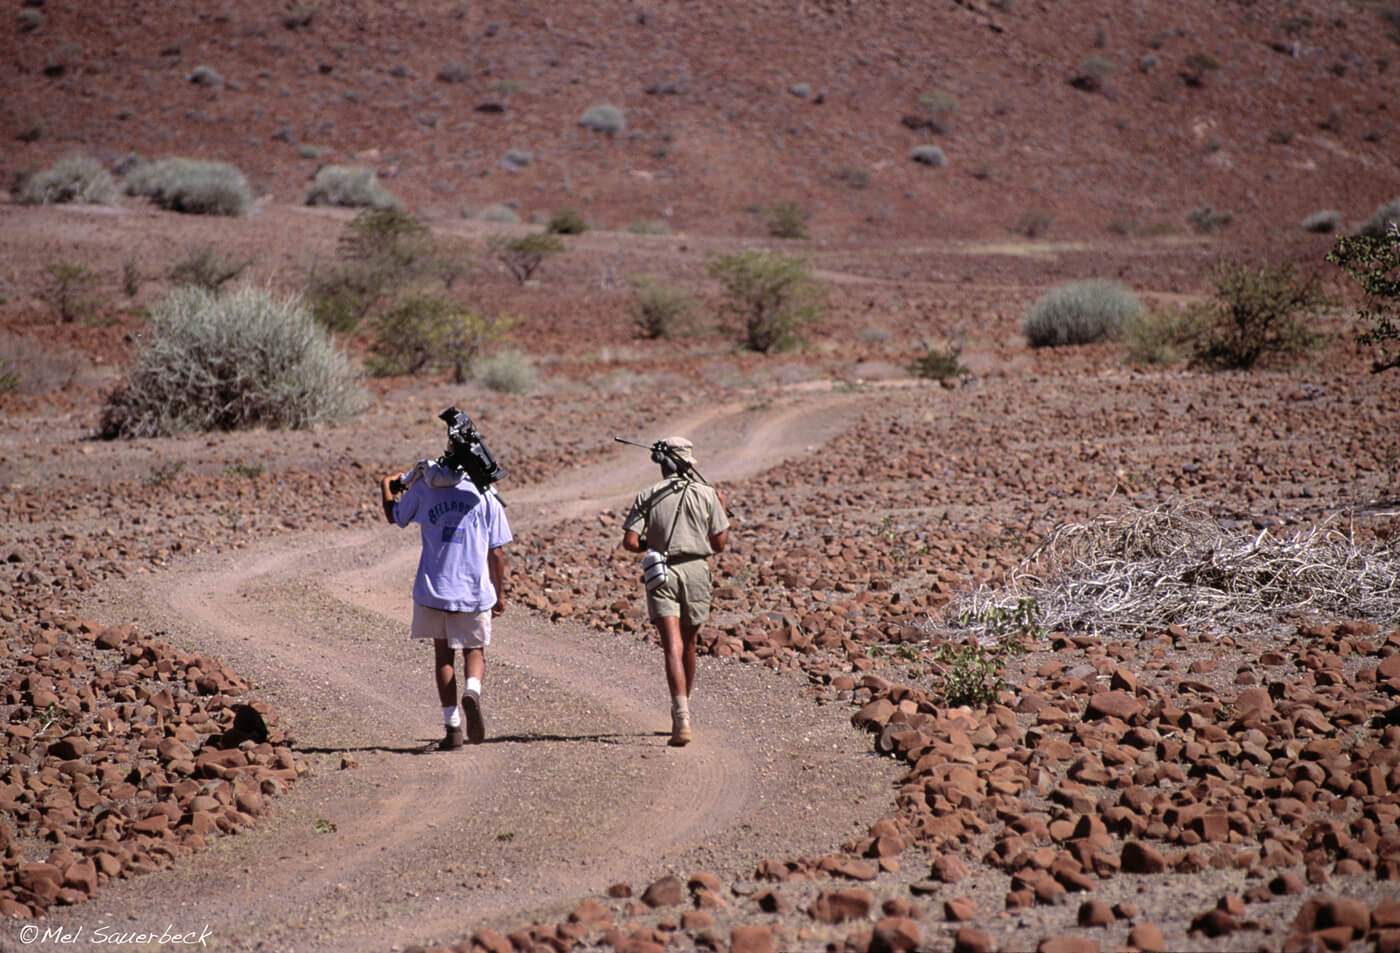 Photographers walking track in Namibia